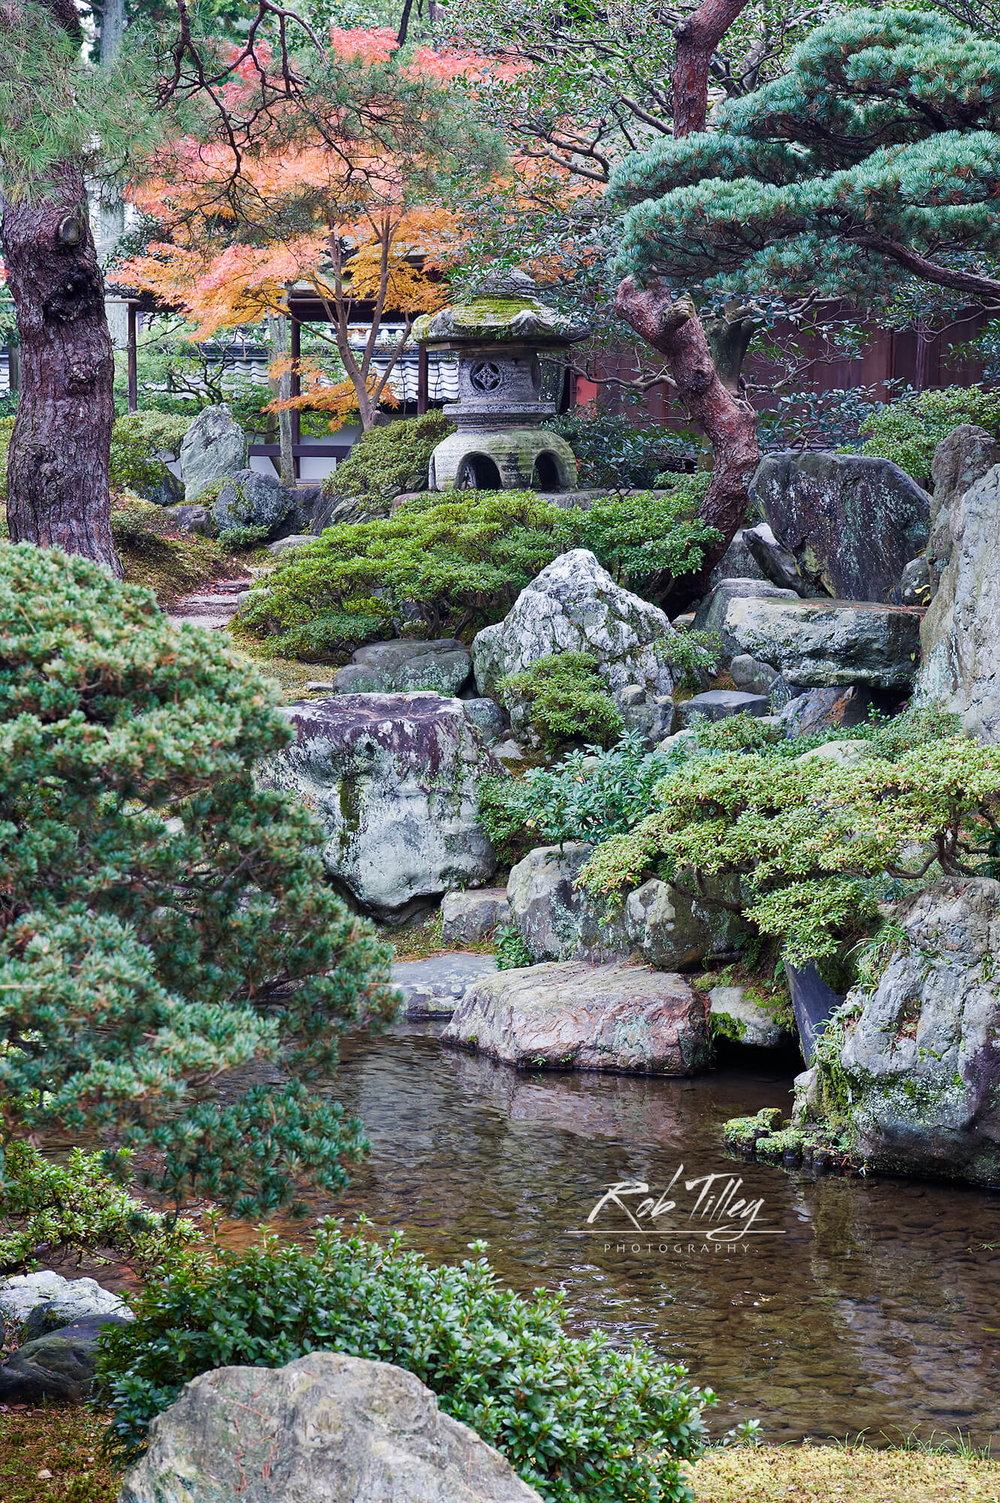 Kyoto Imperial Palace Garden II.jpg